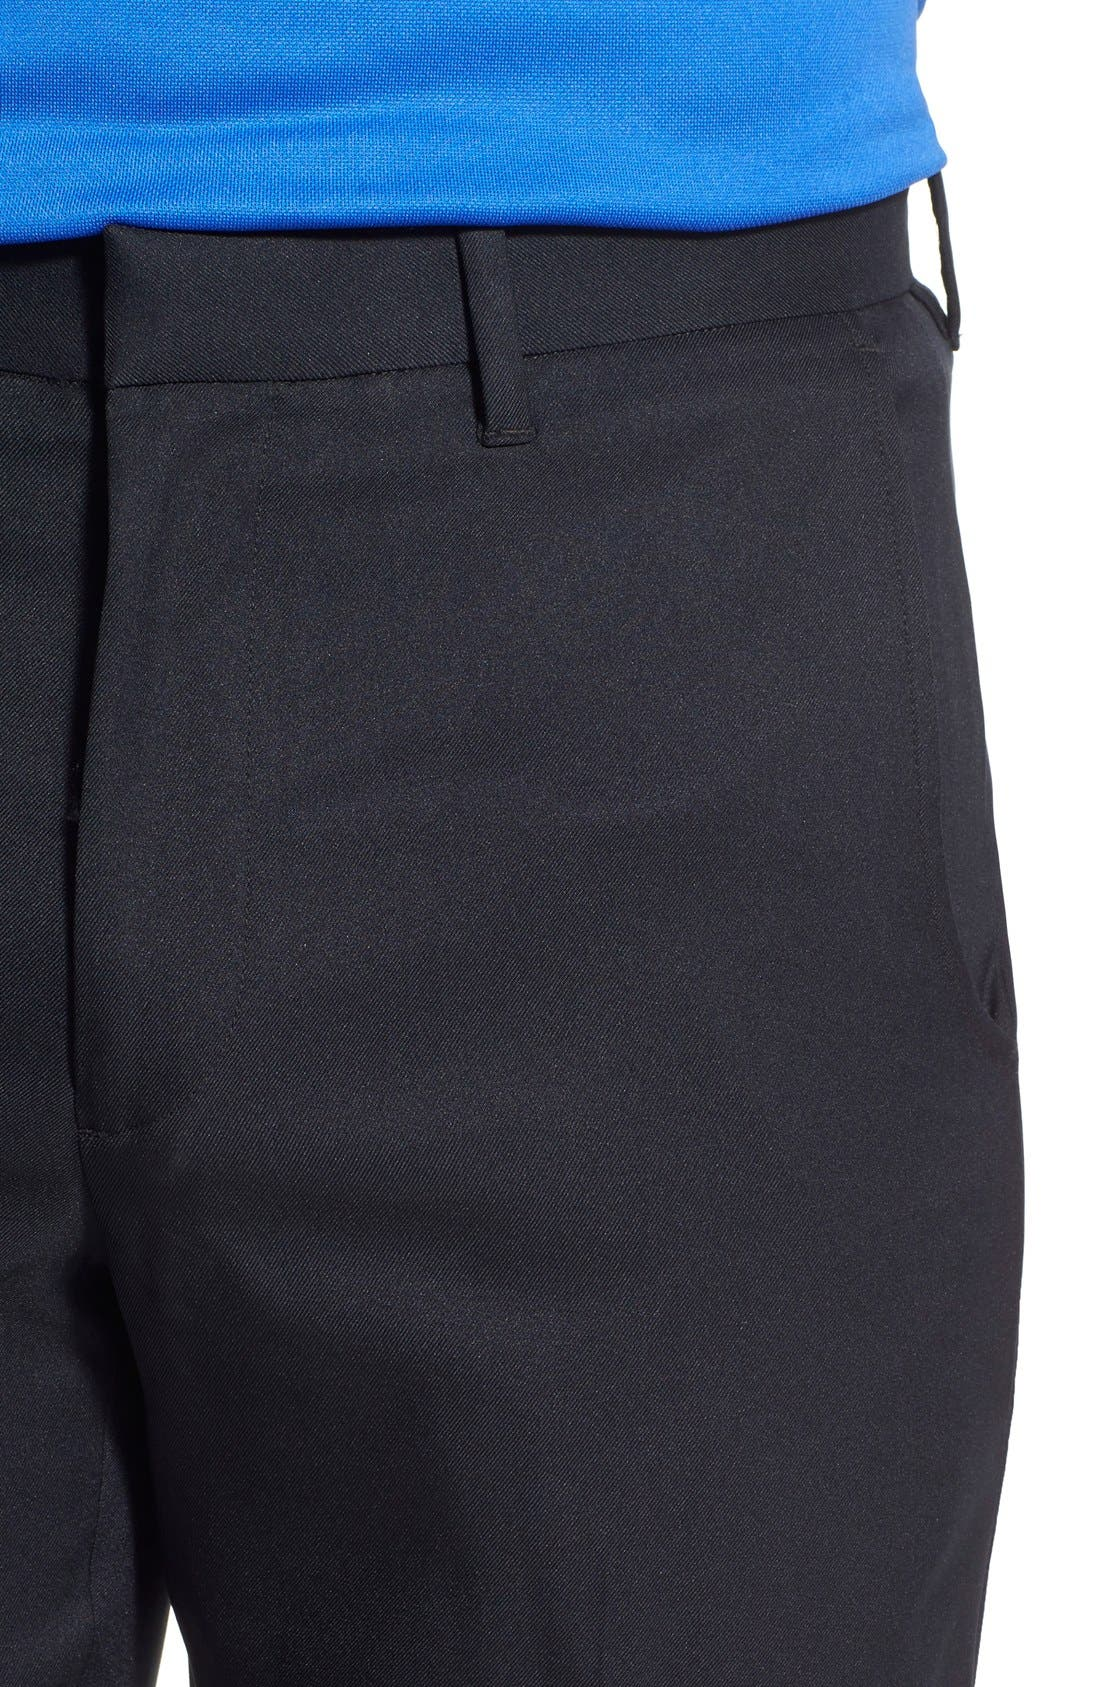 'Tech' Flat Front Wrinkle Free Golf Pants,                             Alternate thumbnail 5, color,                             Black